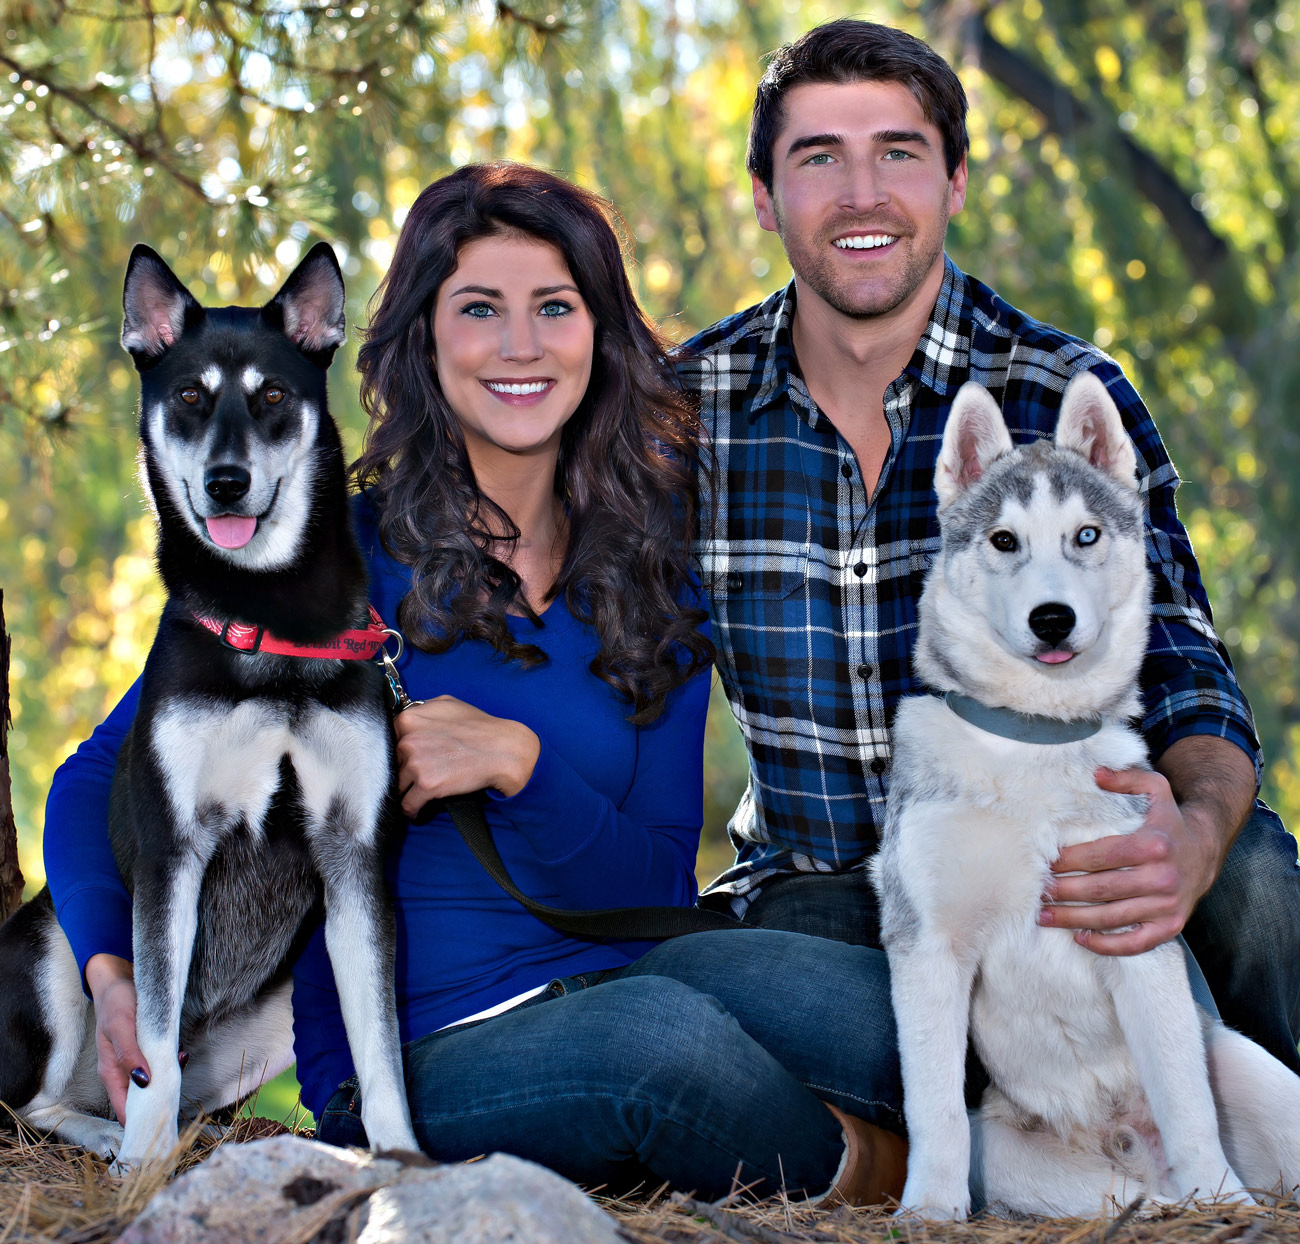 photo of family and dogs pets